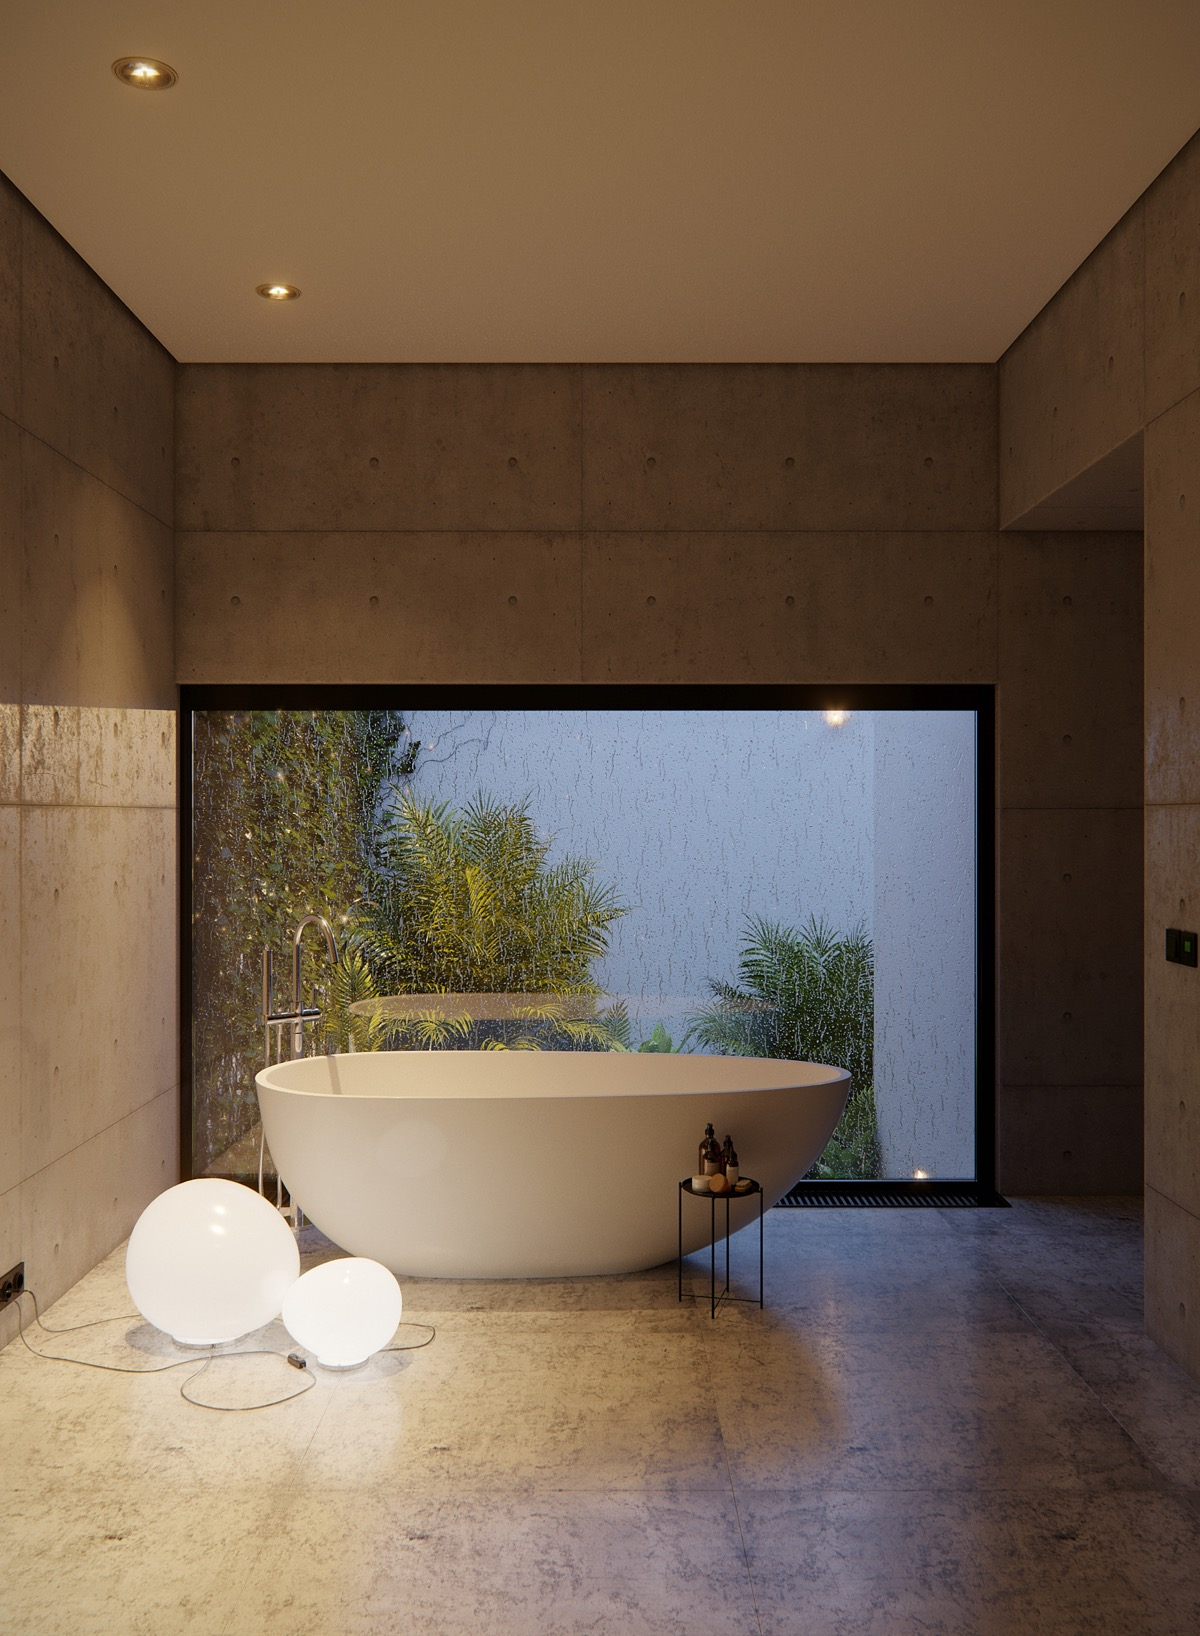 50 Luxury Bathrooms And Tips You Can Copy From Them images 3